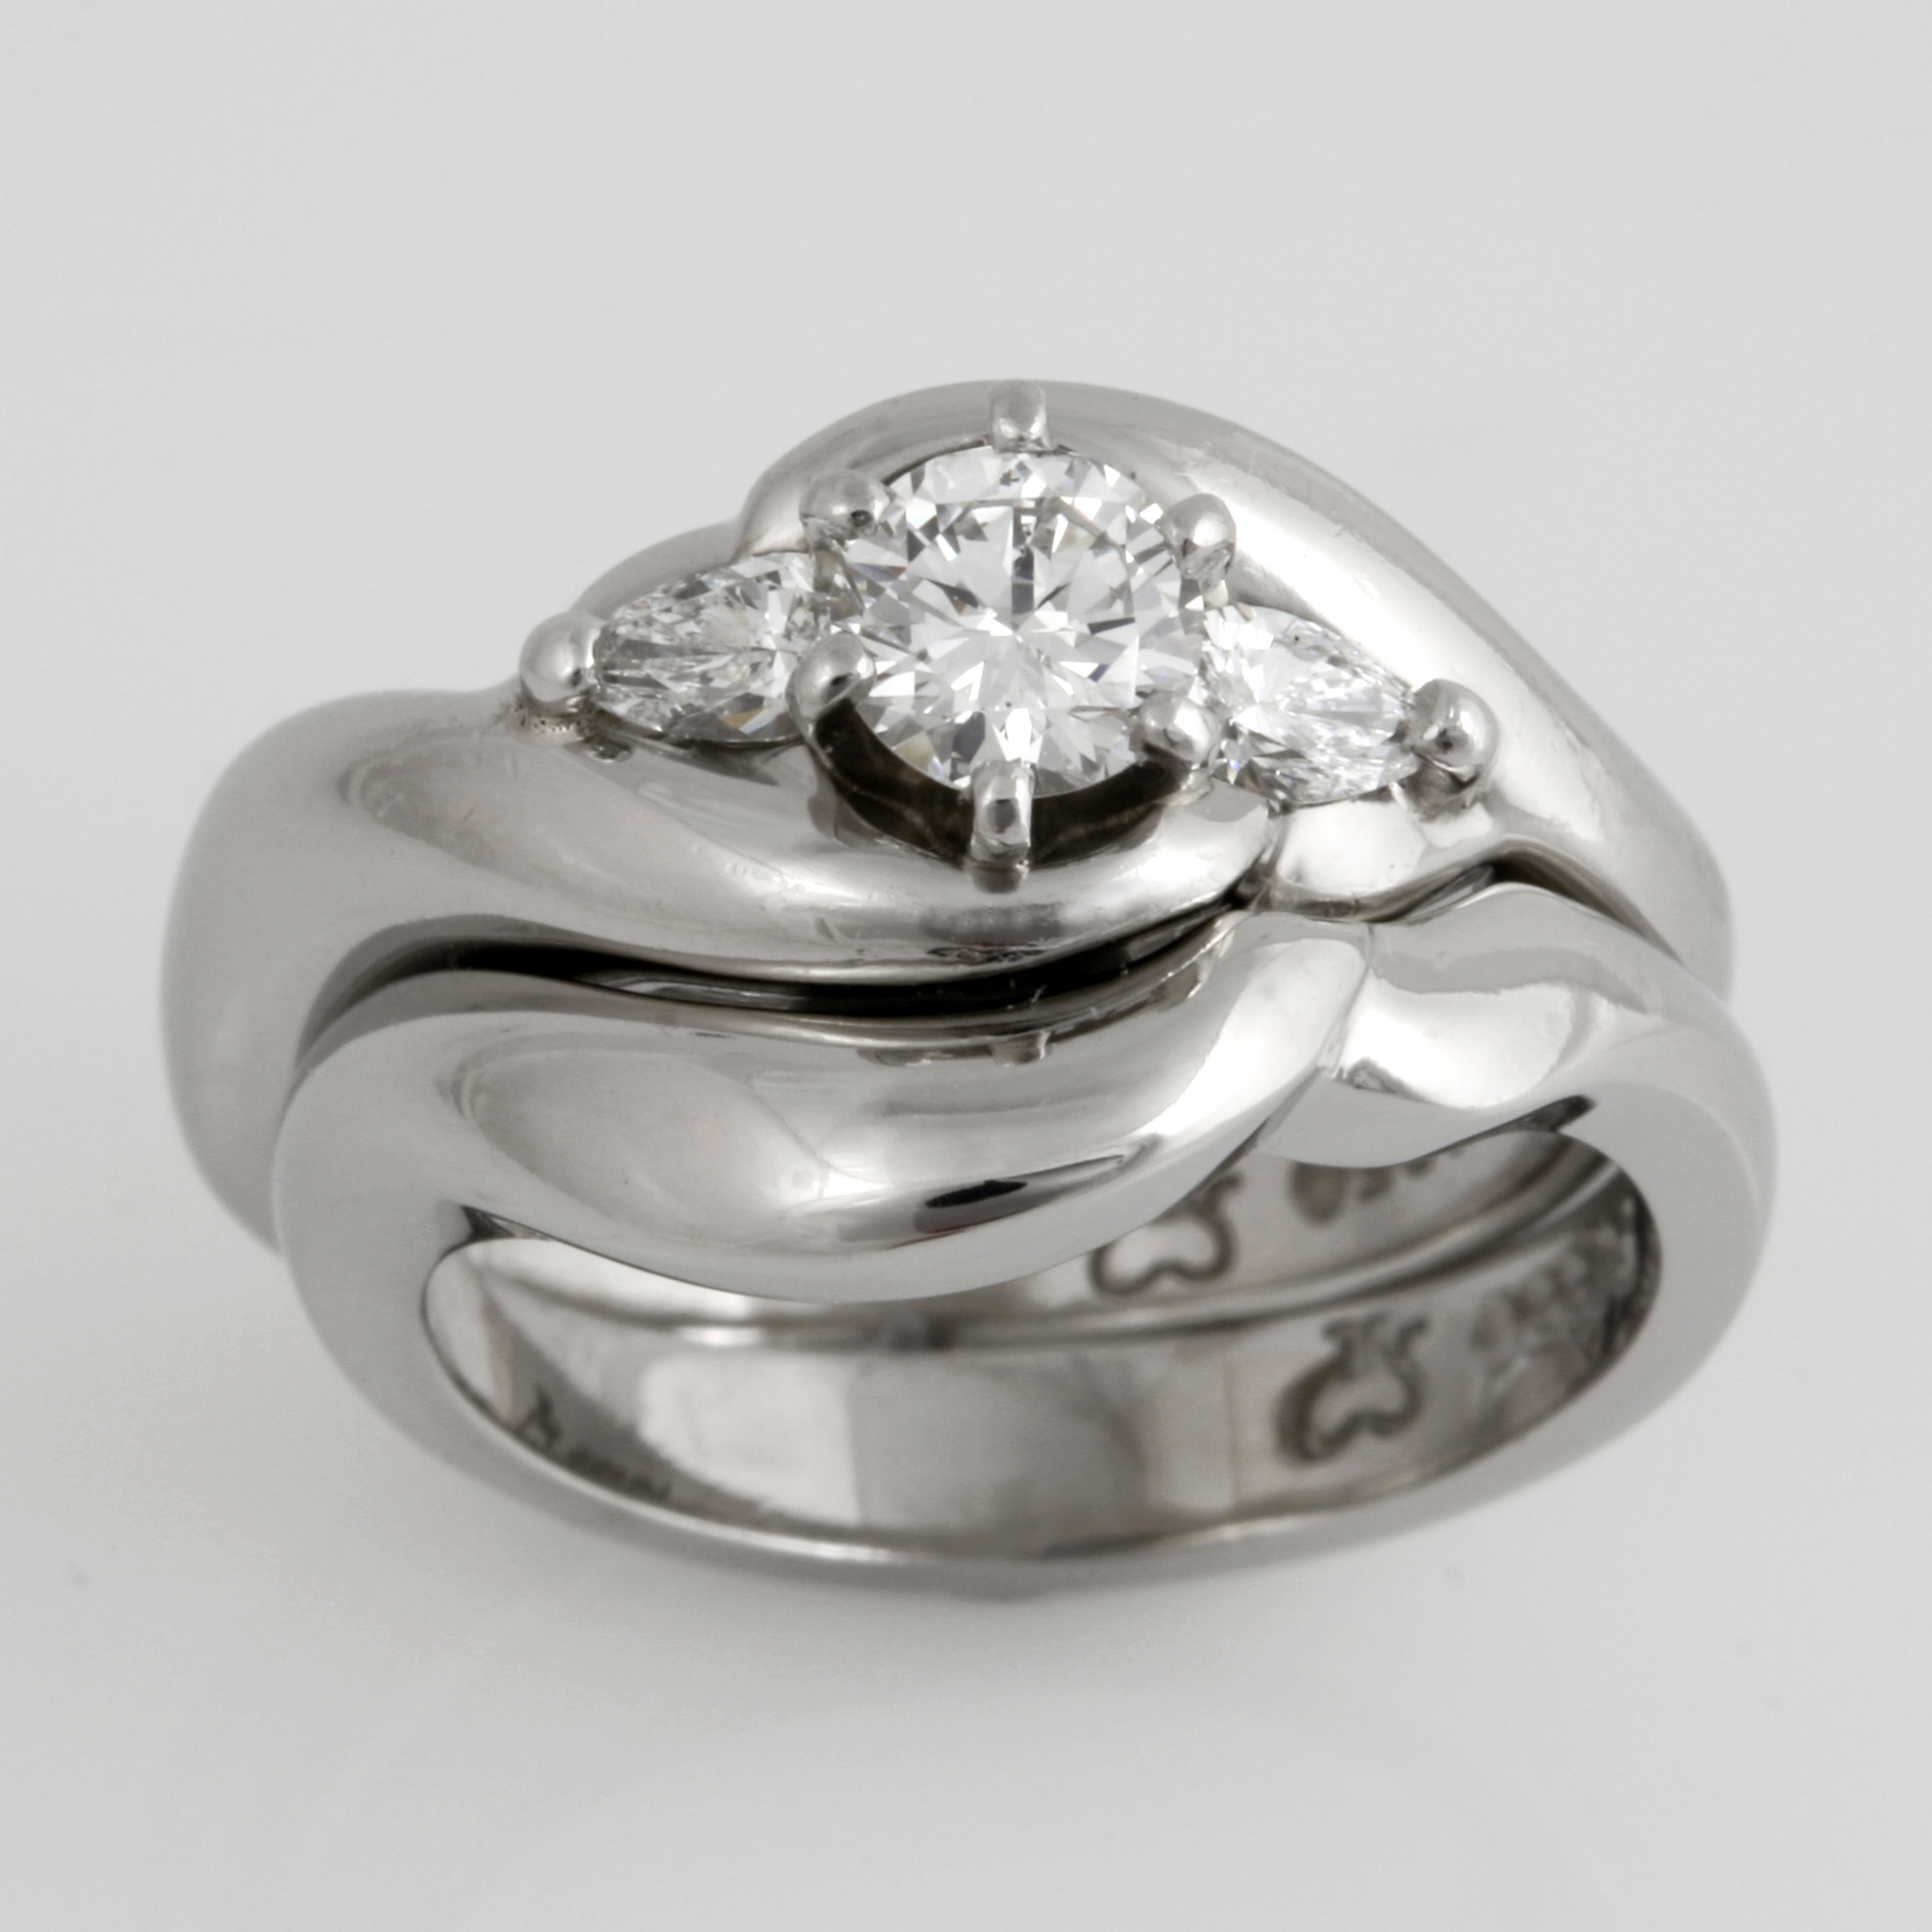 Handmade ladies palladium engagement and wedding ring set